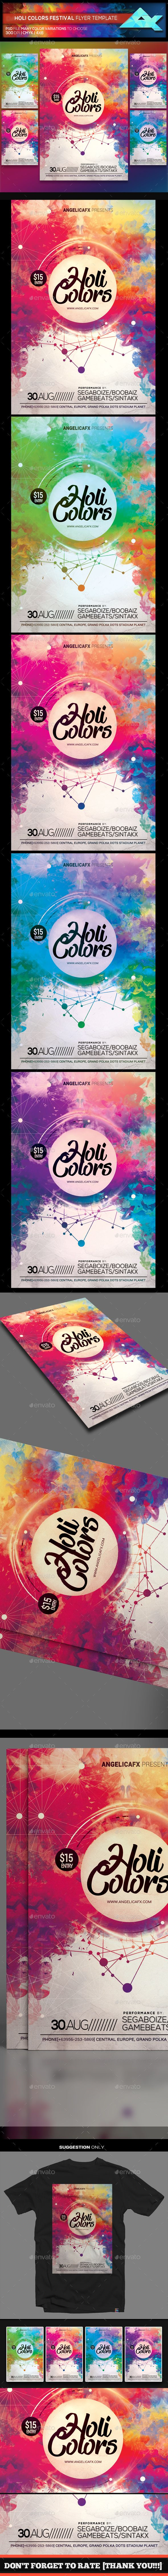 Holi Colors Music Festival Flyer Template #abstract #dubstep  • Download here → https://graphicriver.net/item/holi-colors-music-festival-flyer-template/21042845?ref=pxcr